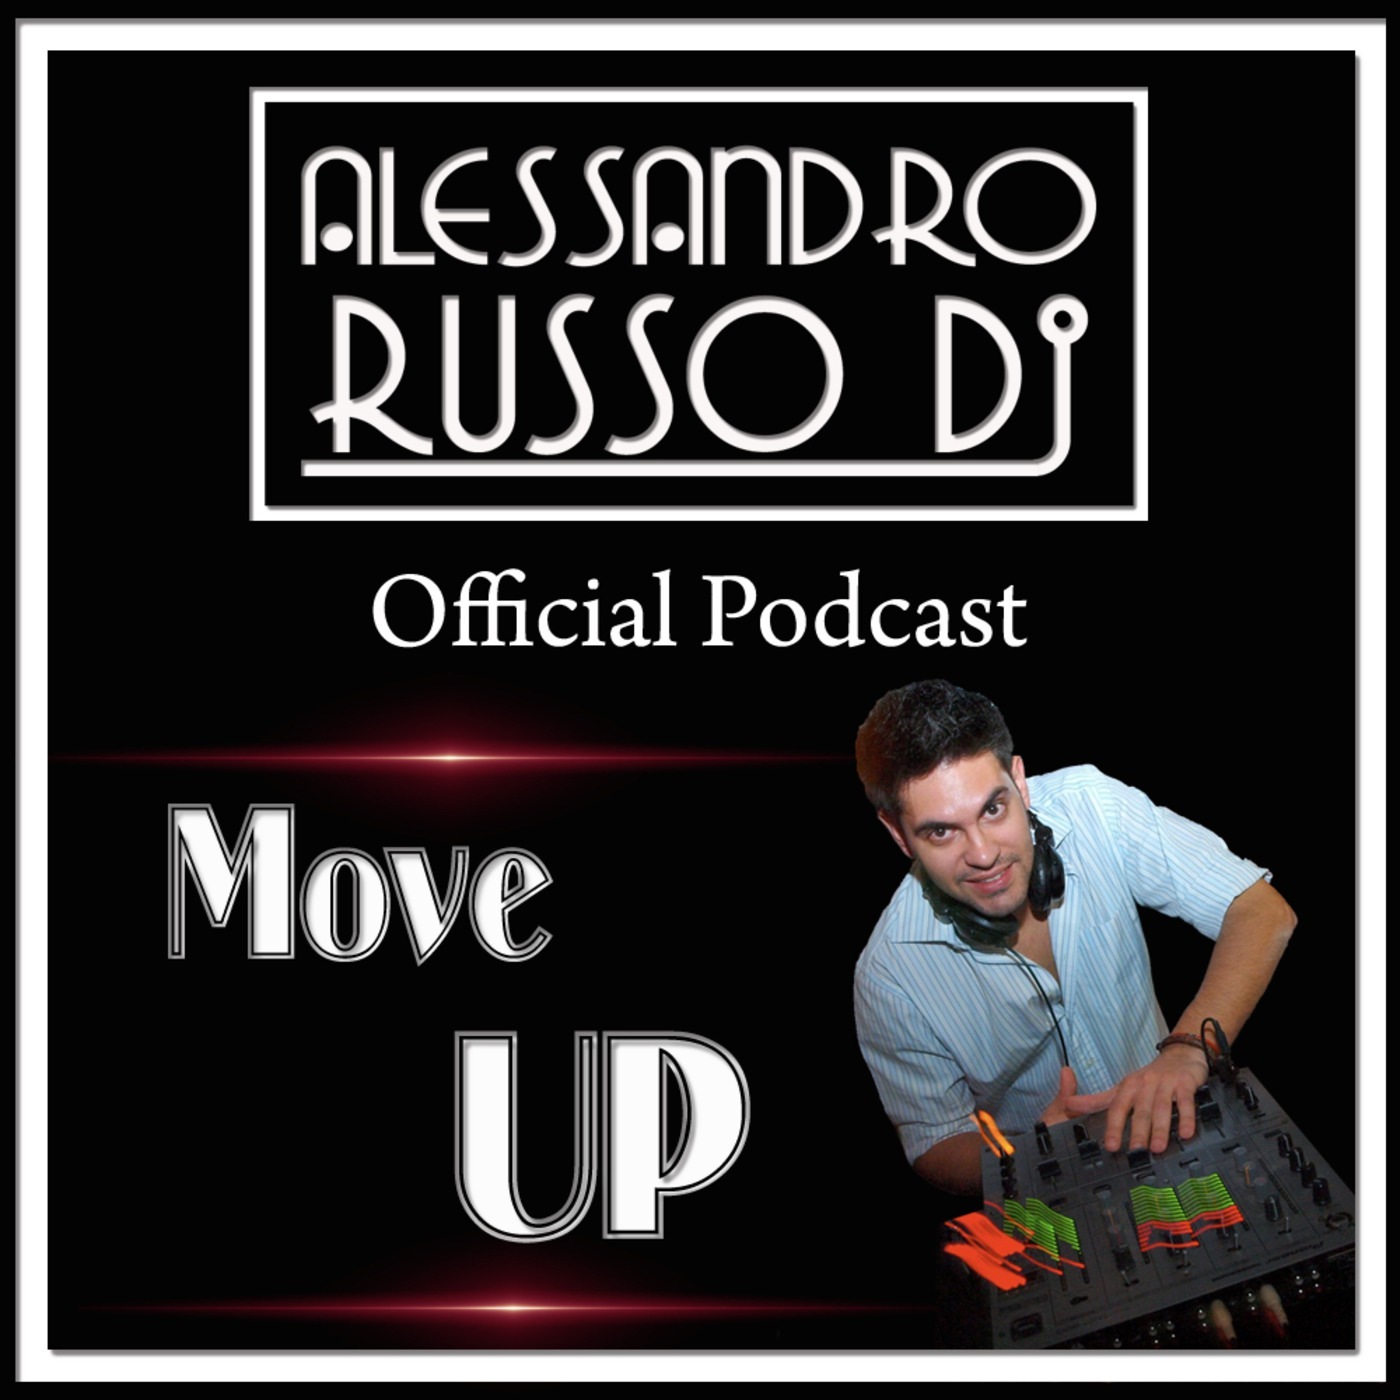 MOVE UP Official Podcast : Alessandro Russo Dj